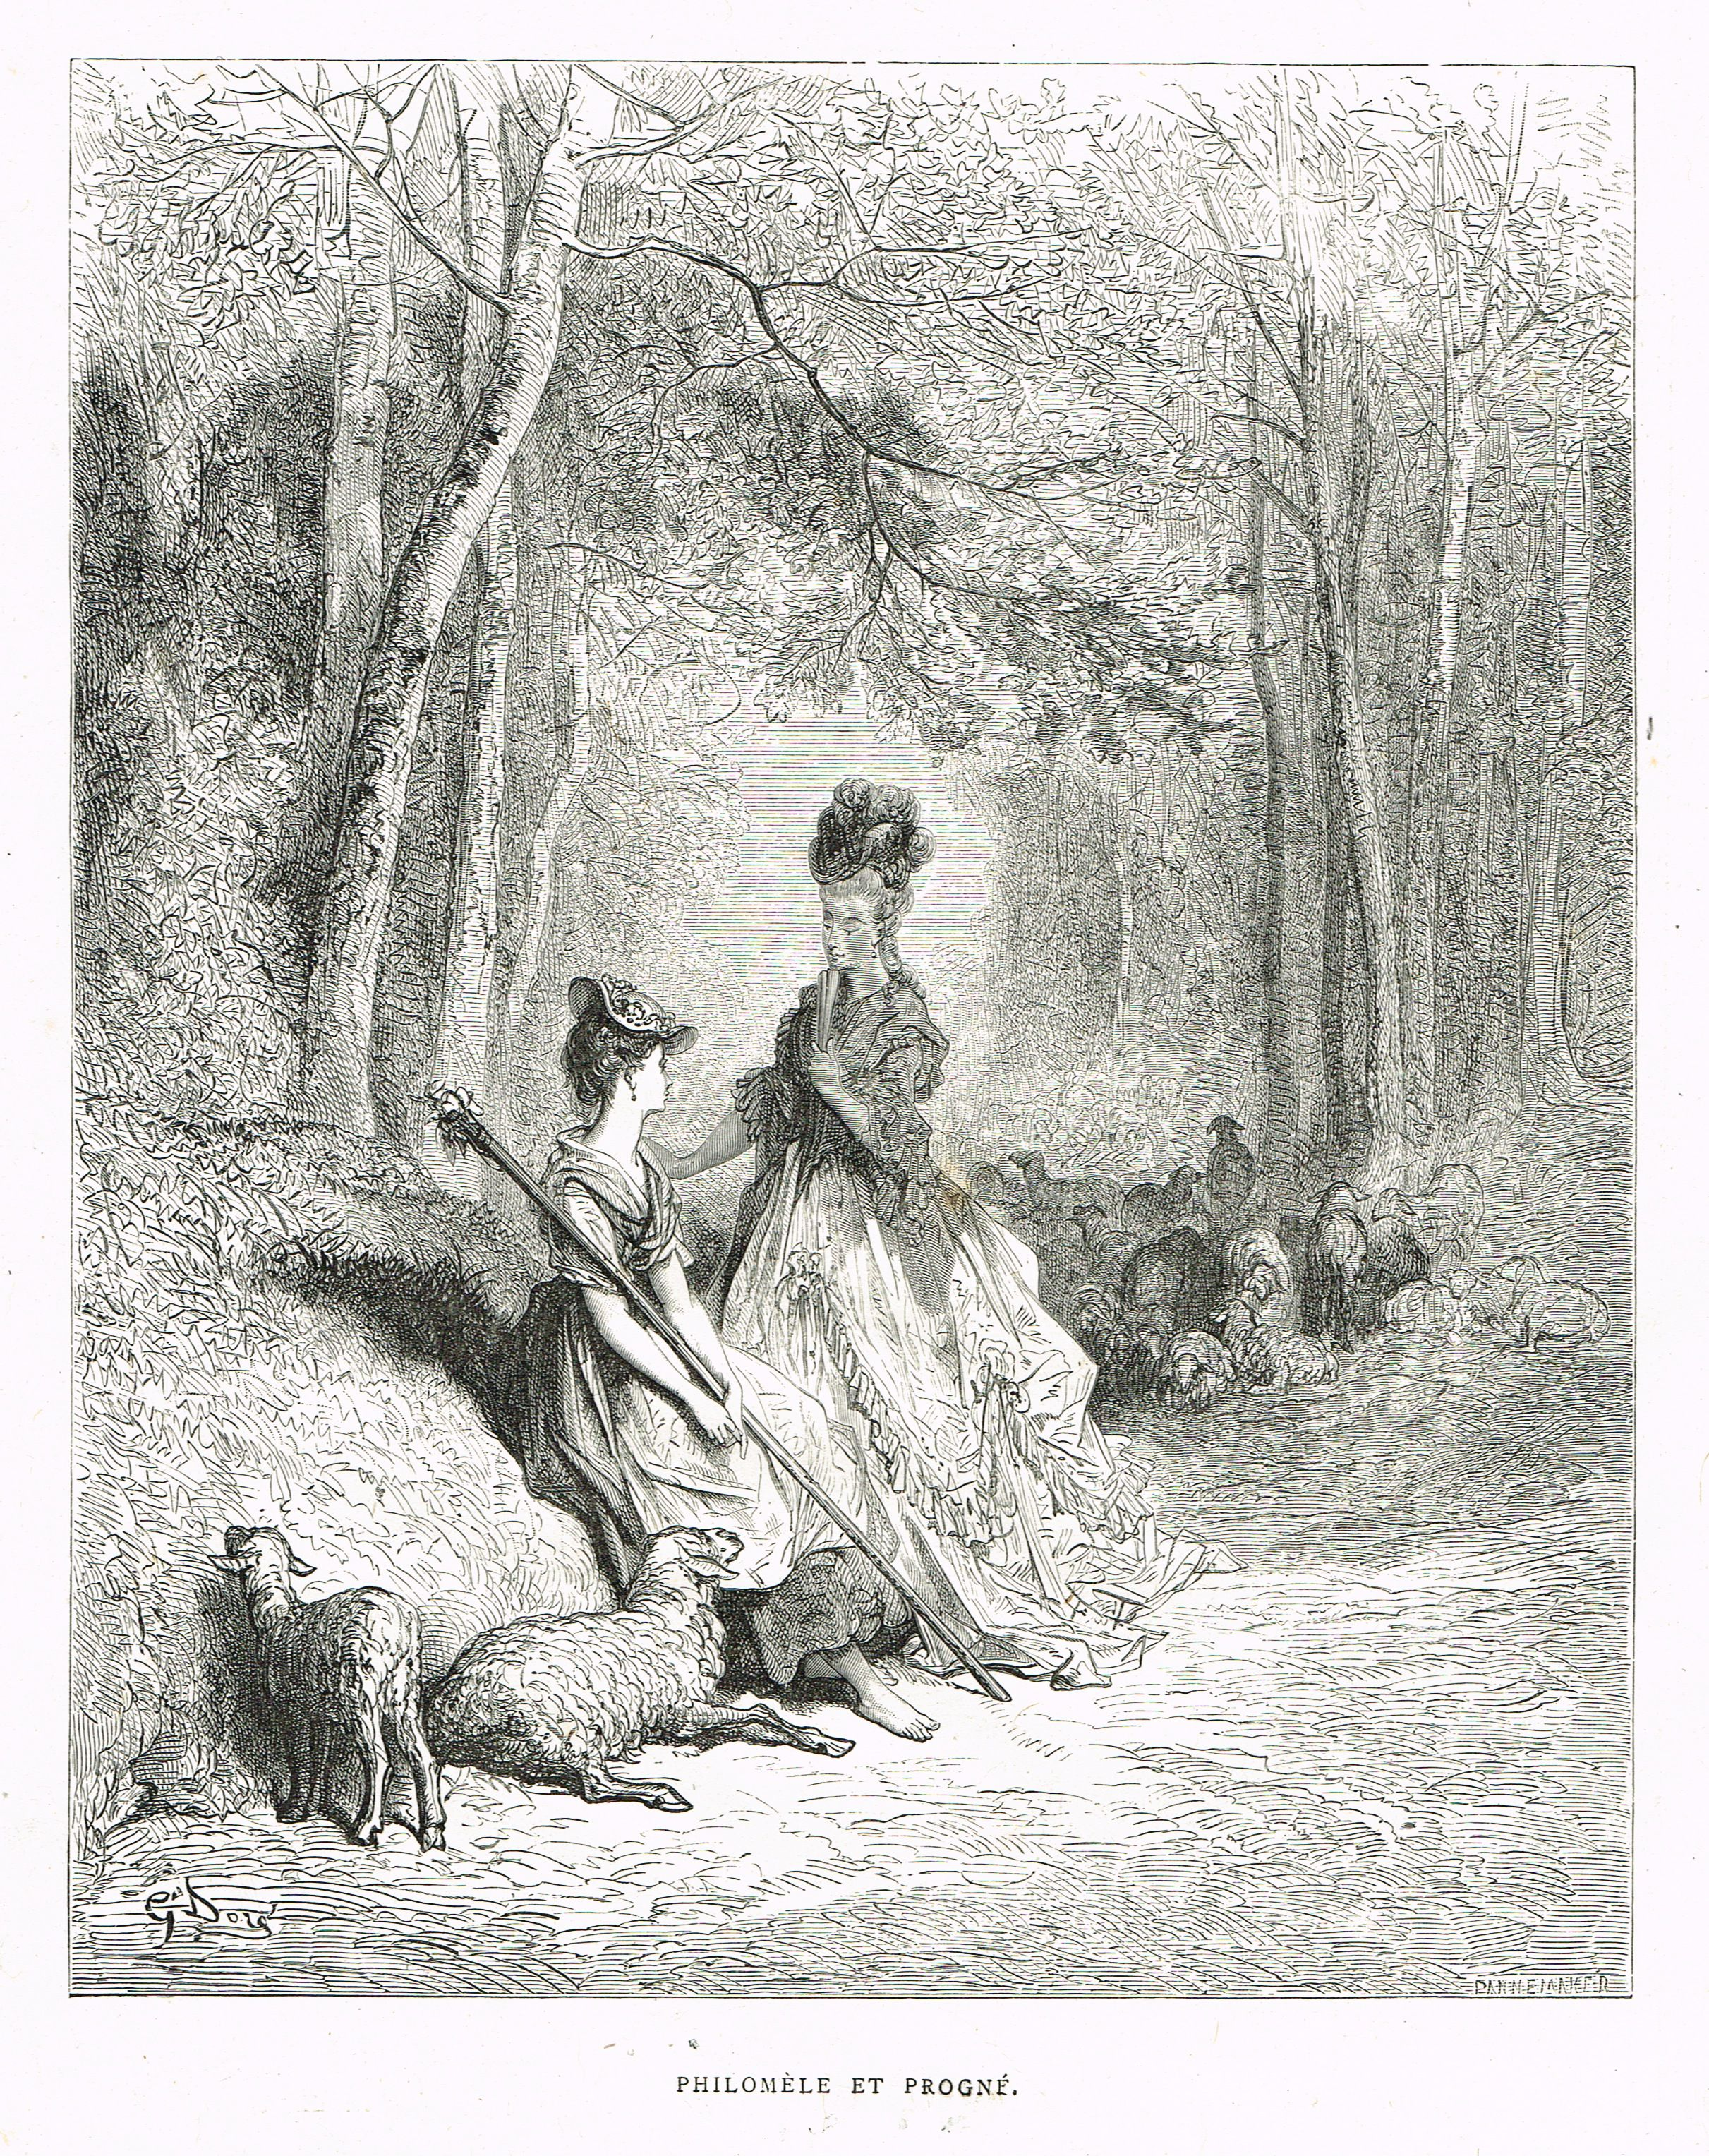 Philomele Et Progne Fable De Jean De La Fontaine Illustree Par Gustave Dore Mas Estampes Anciennes Mas Antique Prints